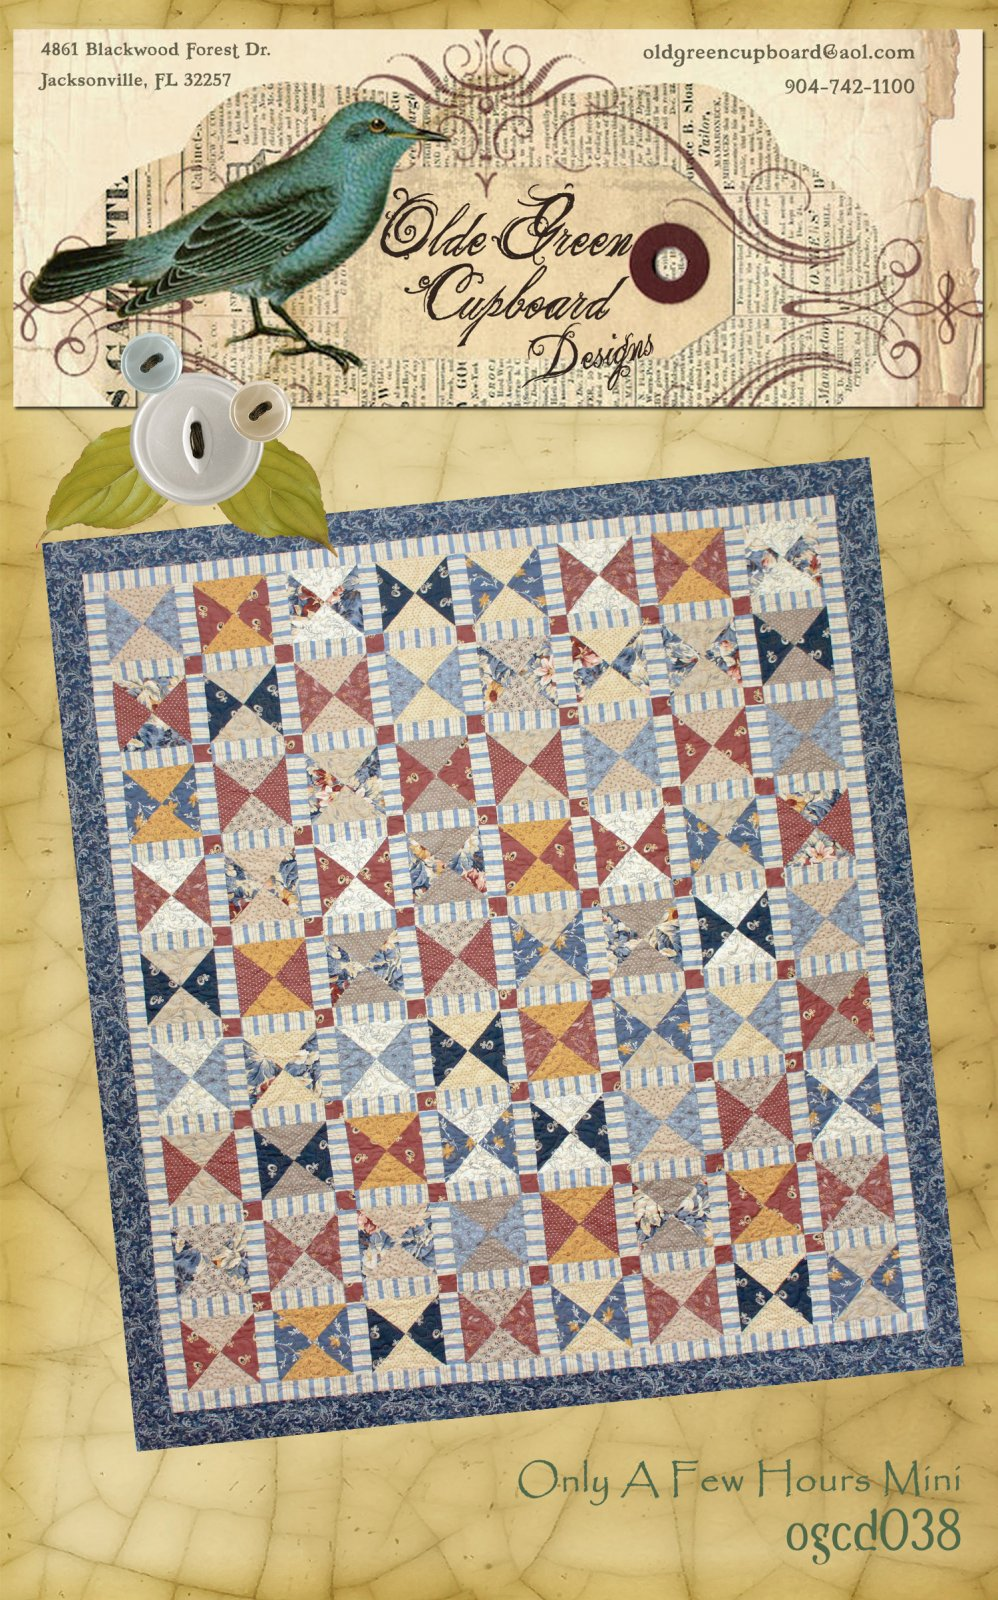 Only A Few Hours Mini Quilt Pattern - OGCD038